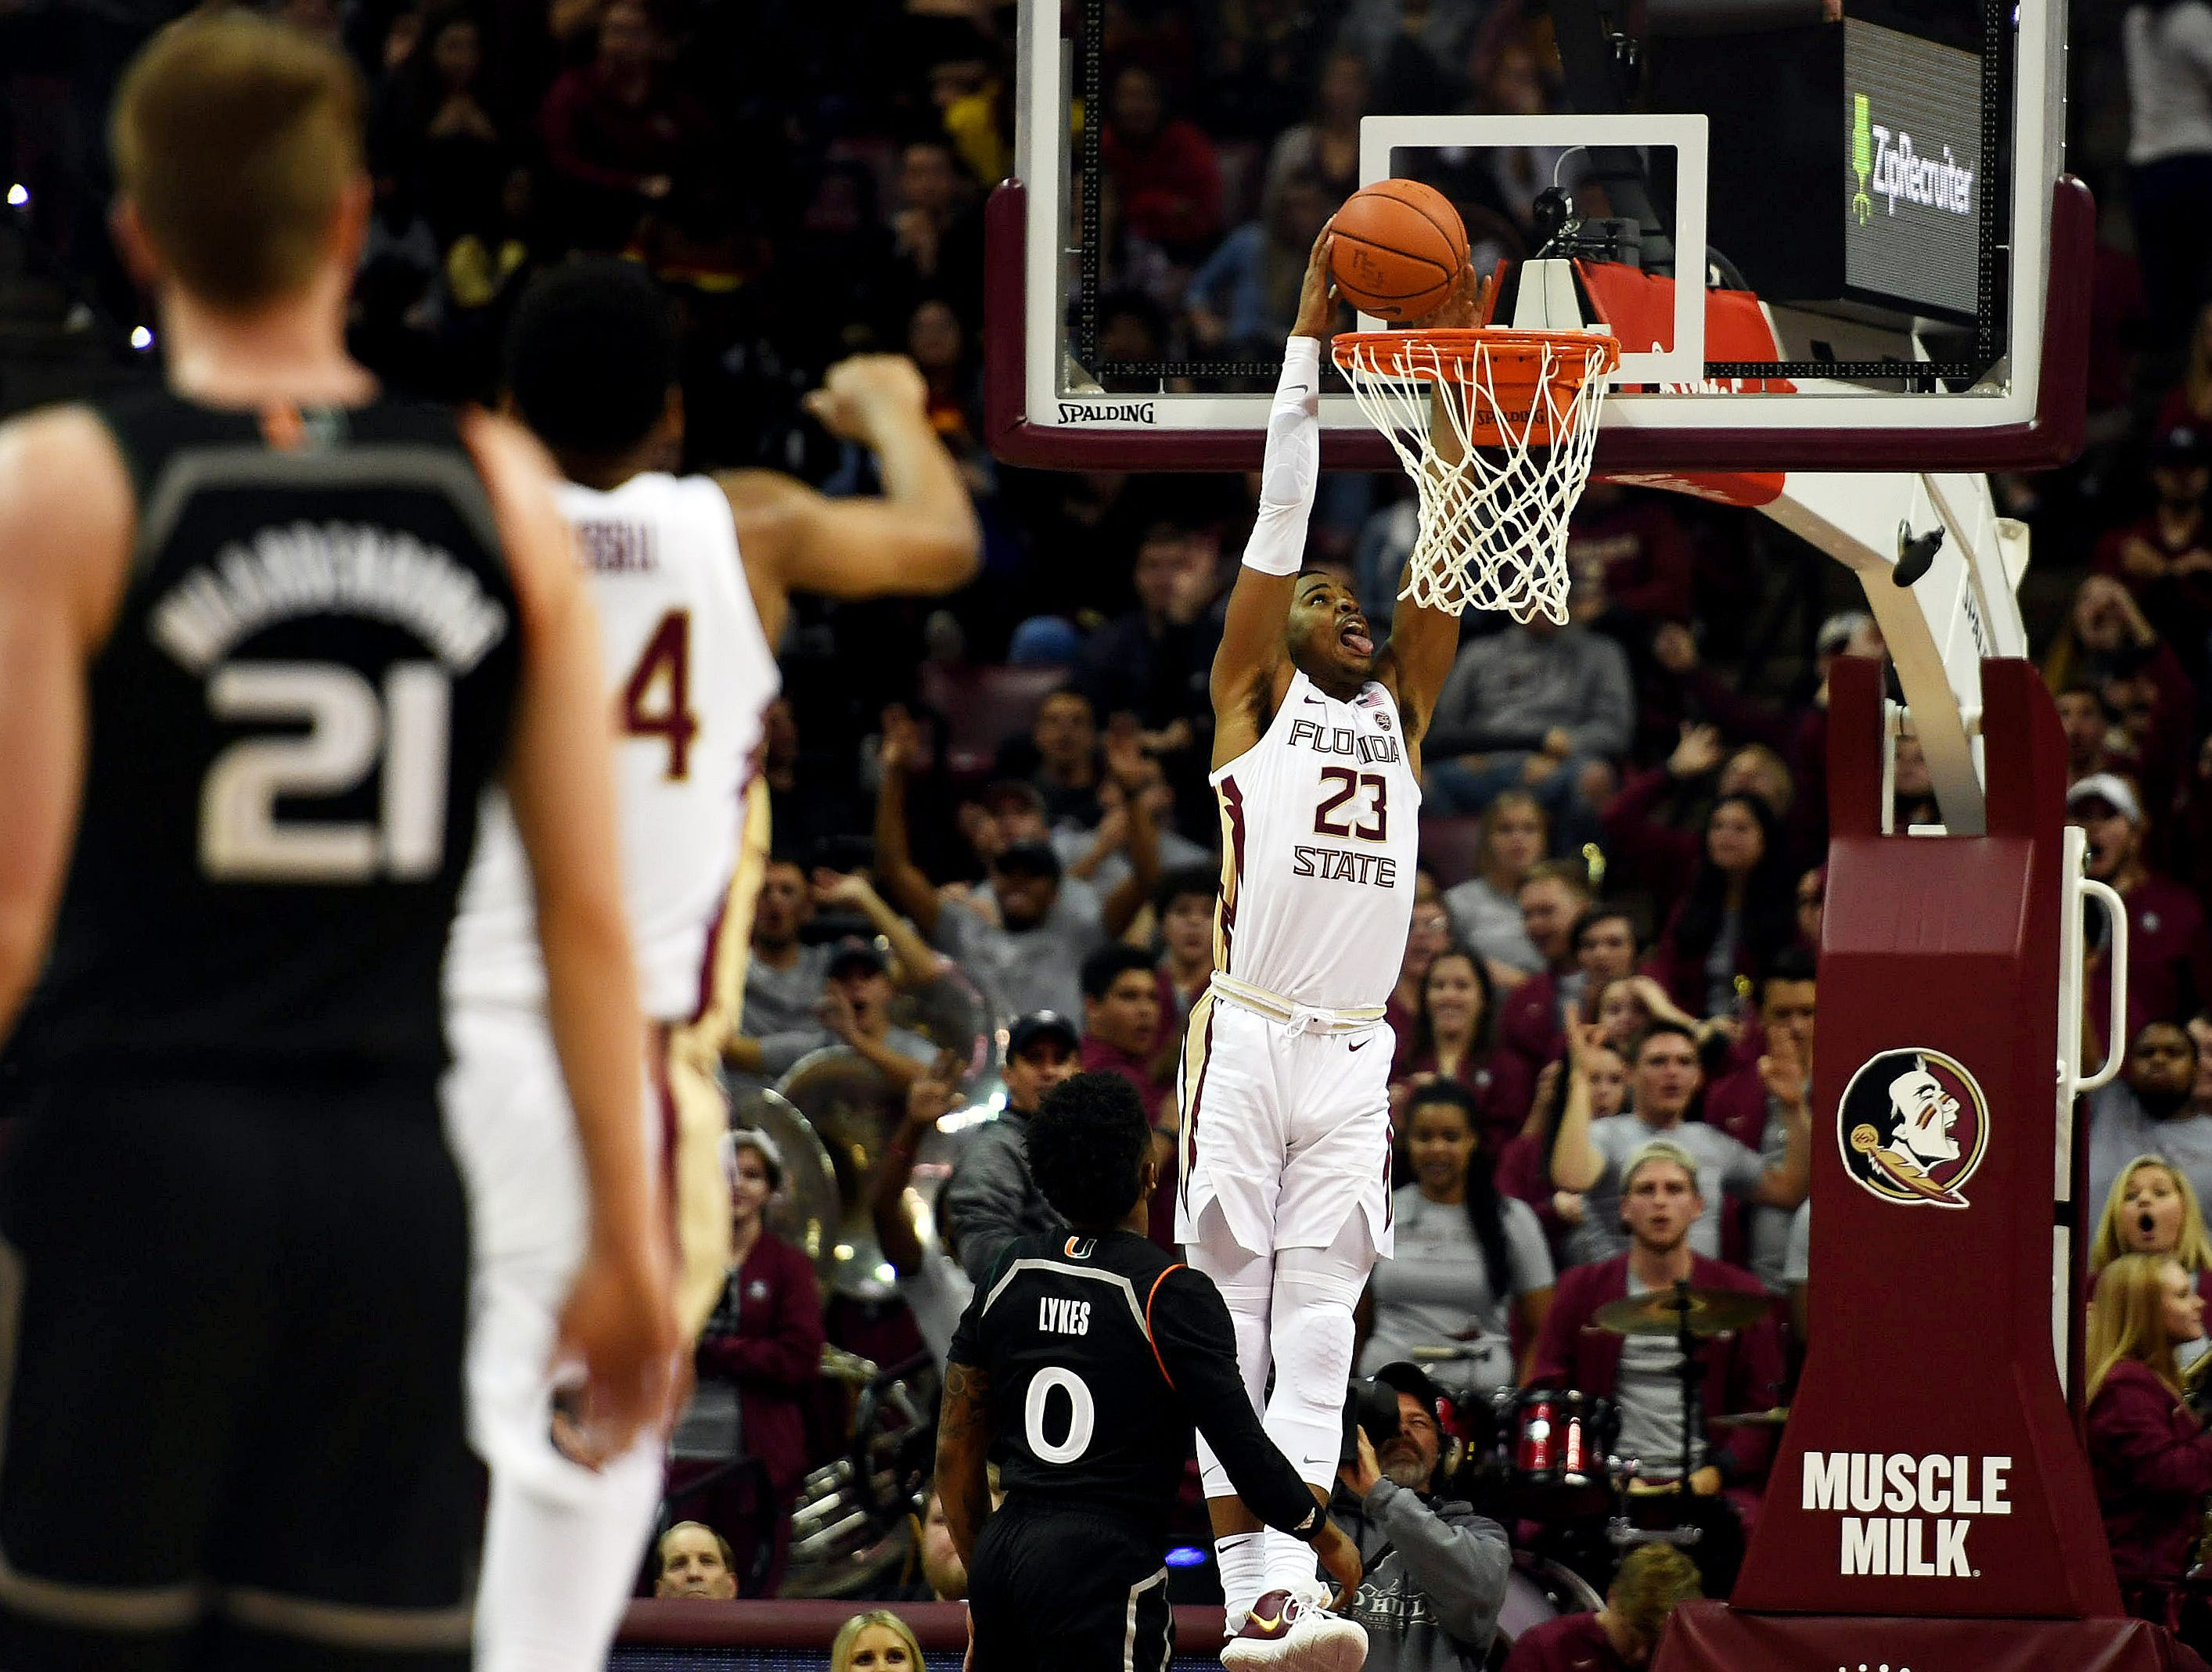 Jan 9, 2019; Tallahassee, FL, USA;  Florida State Seminoles guard MJ Walker (23) dunks the ball against Miami Hurricanes guard Chris Lykes (0) during the first half at Donald L. Tucker Center. Mandatory Credit: Melina Myers-USA TODAY Sports